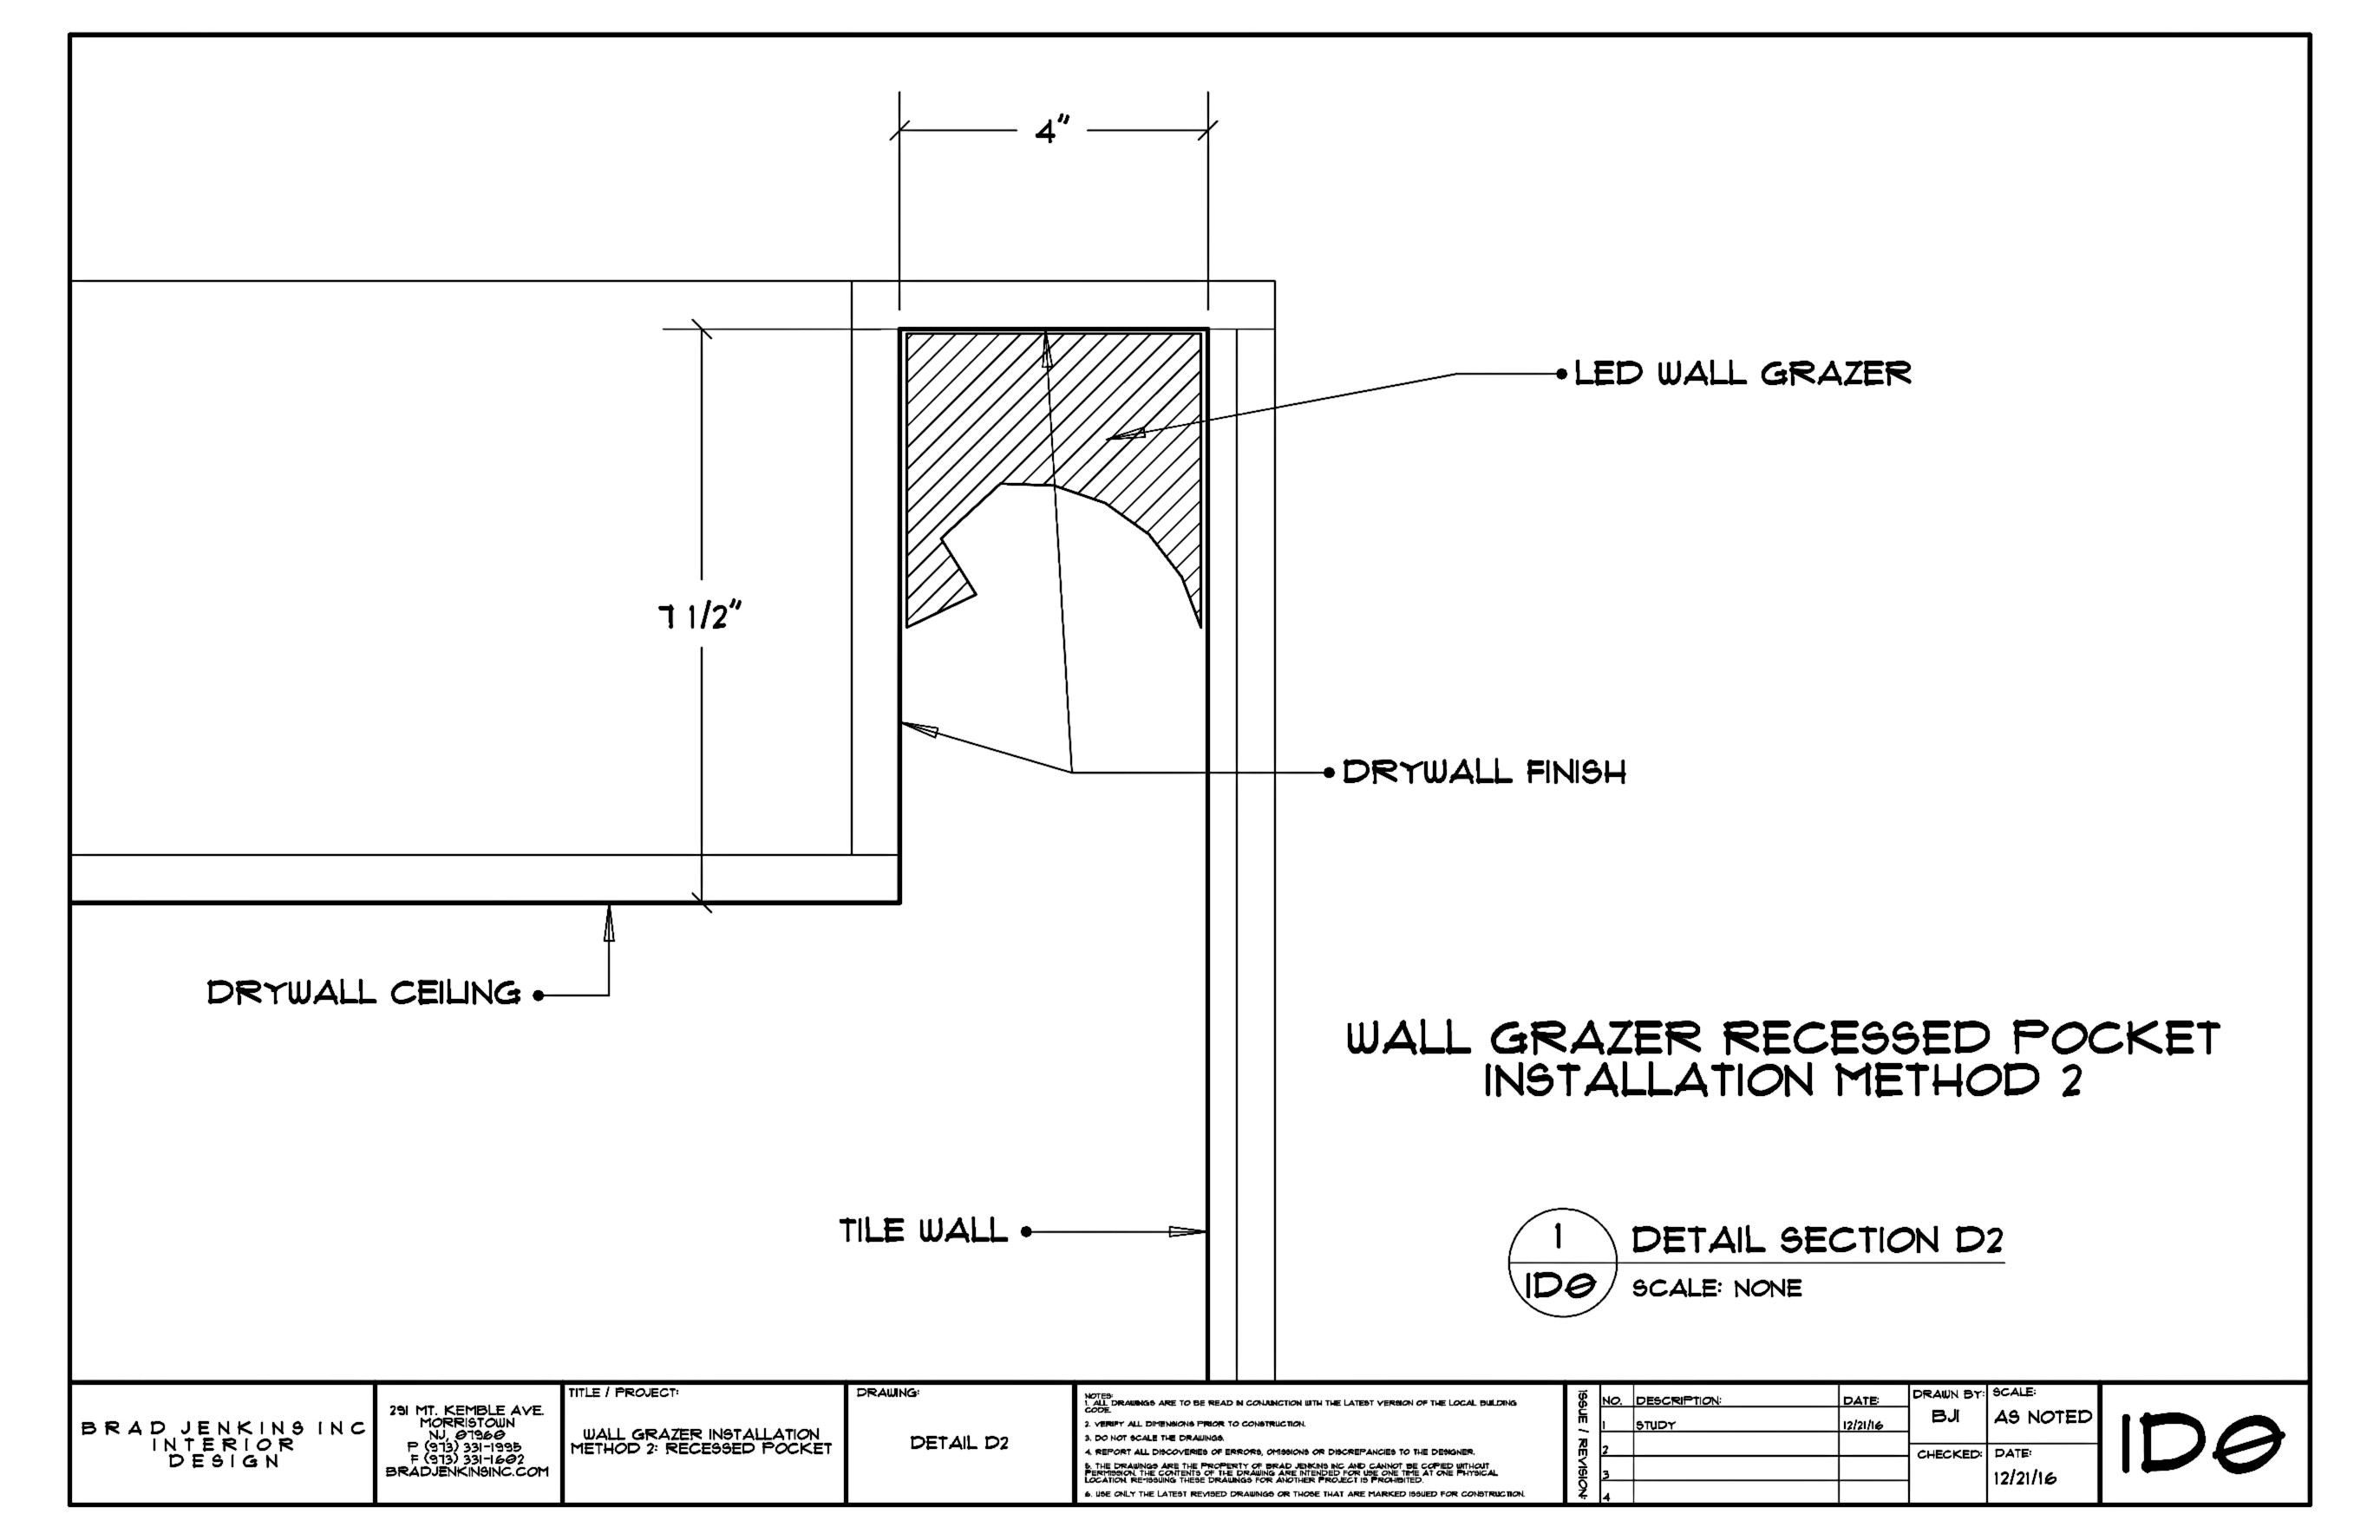 wall grazing light fixture installation method 2 recessed pocket